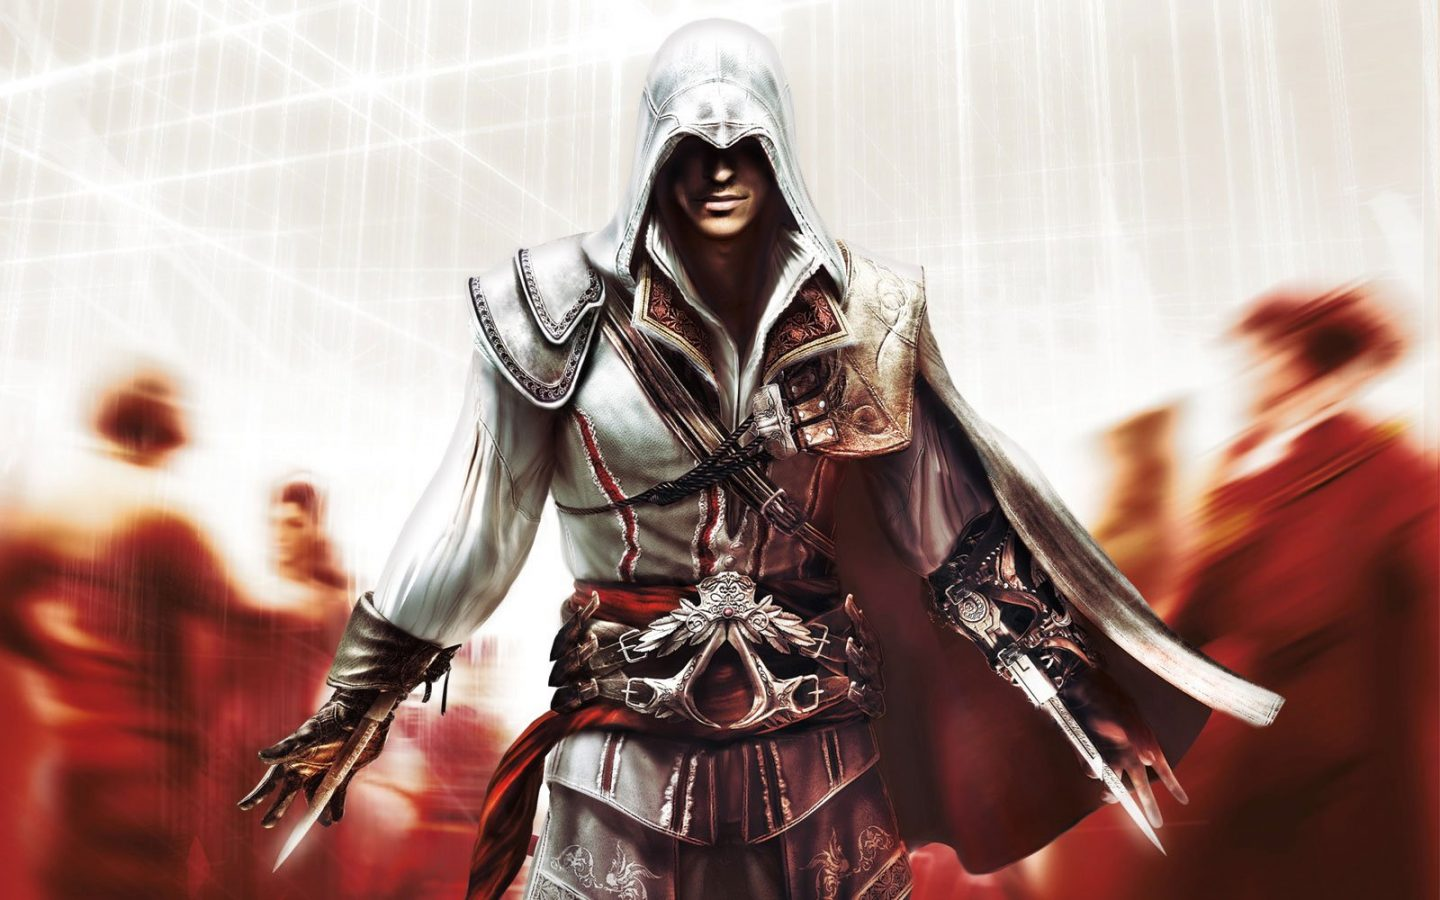 Assassin's Creed II is free to download and keep on PC